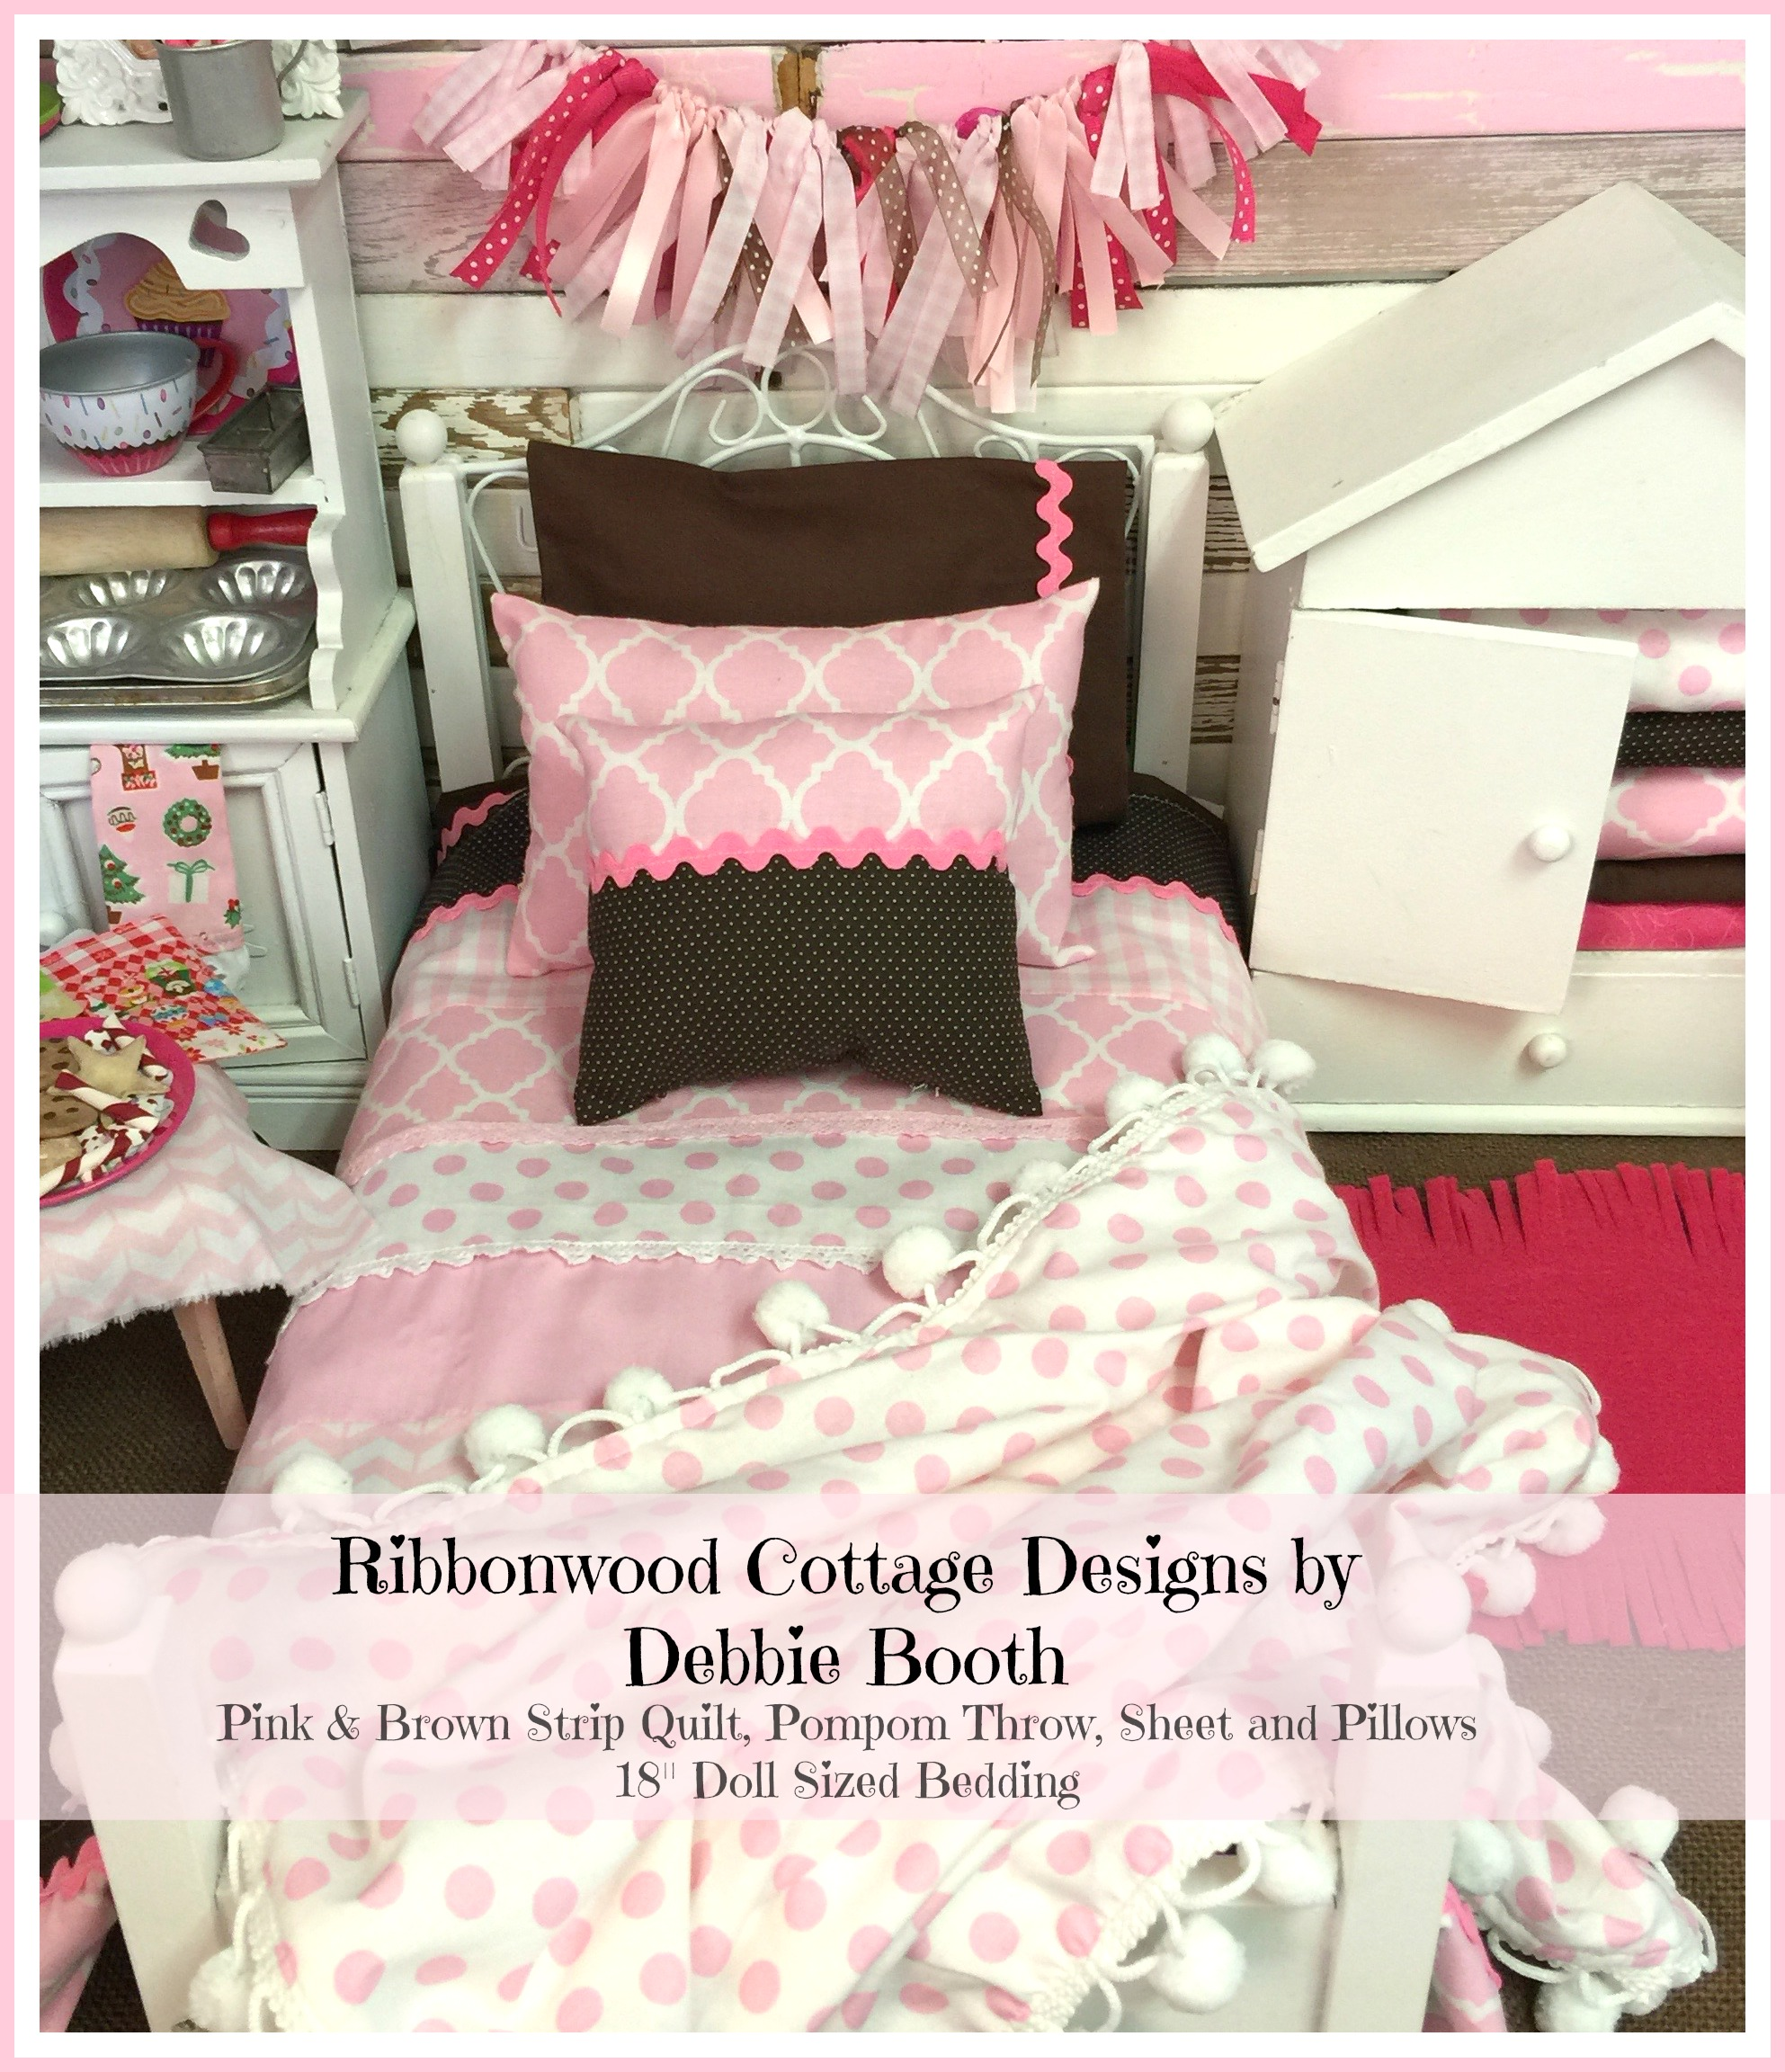 18 inch Girl PDF Pattern Pink and Brown Strip Quilt, Sheet, Pillows and Pompom Throw- 18 inch doll size bedding